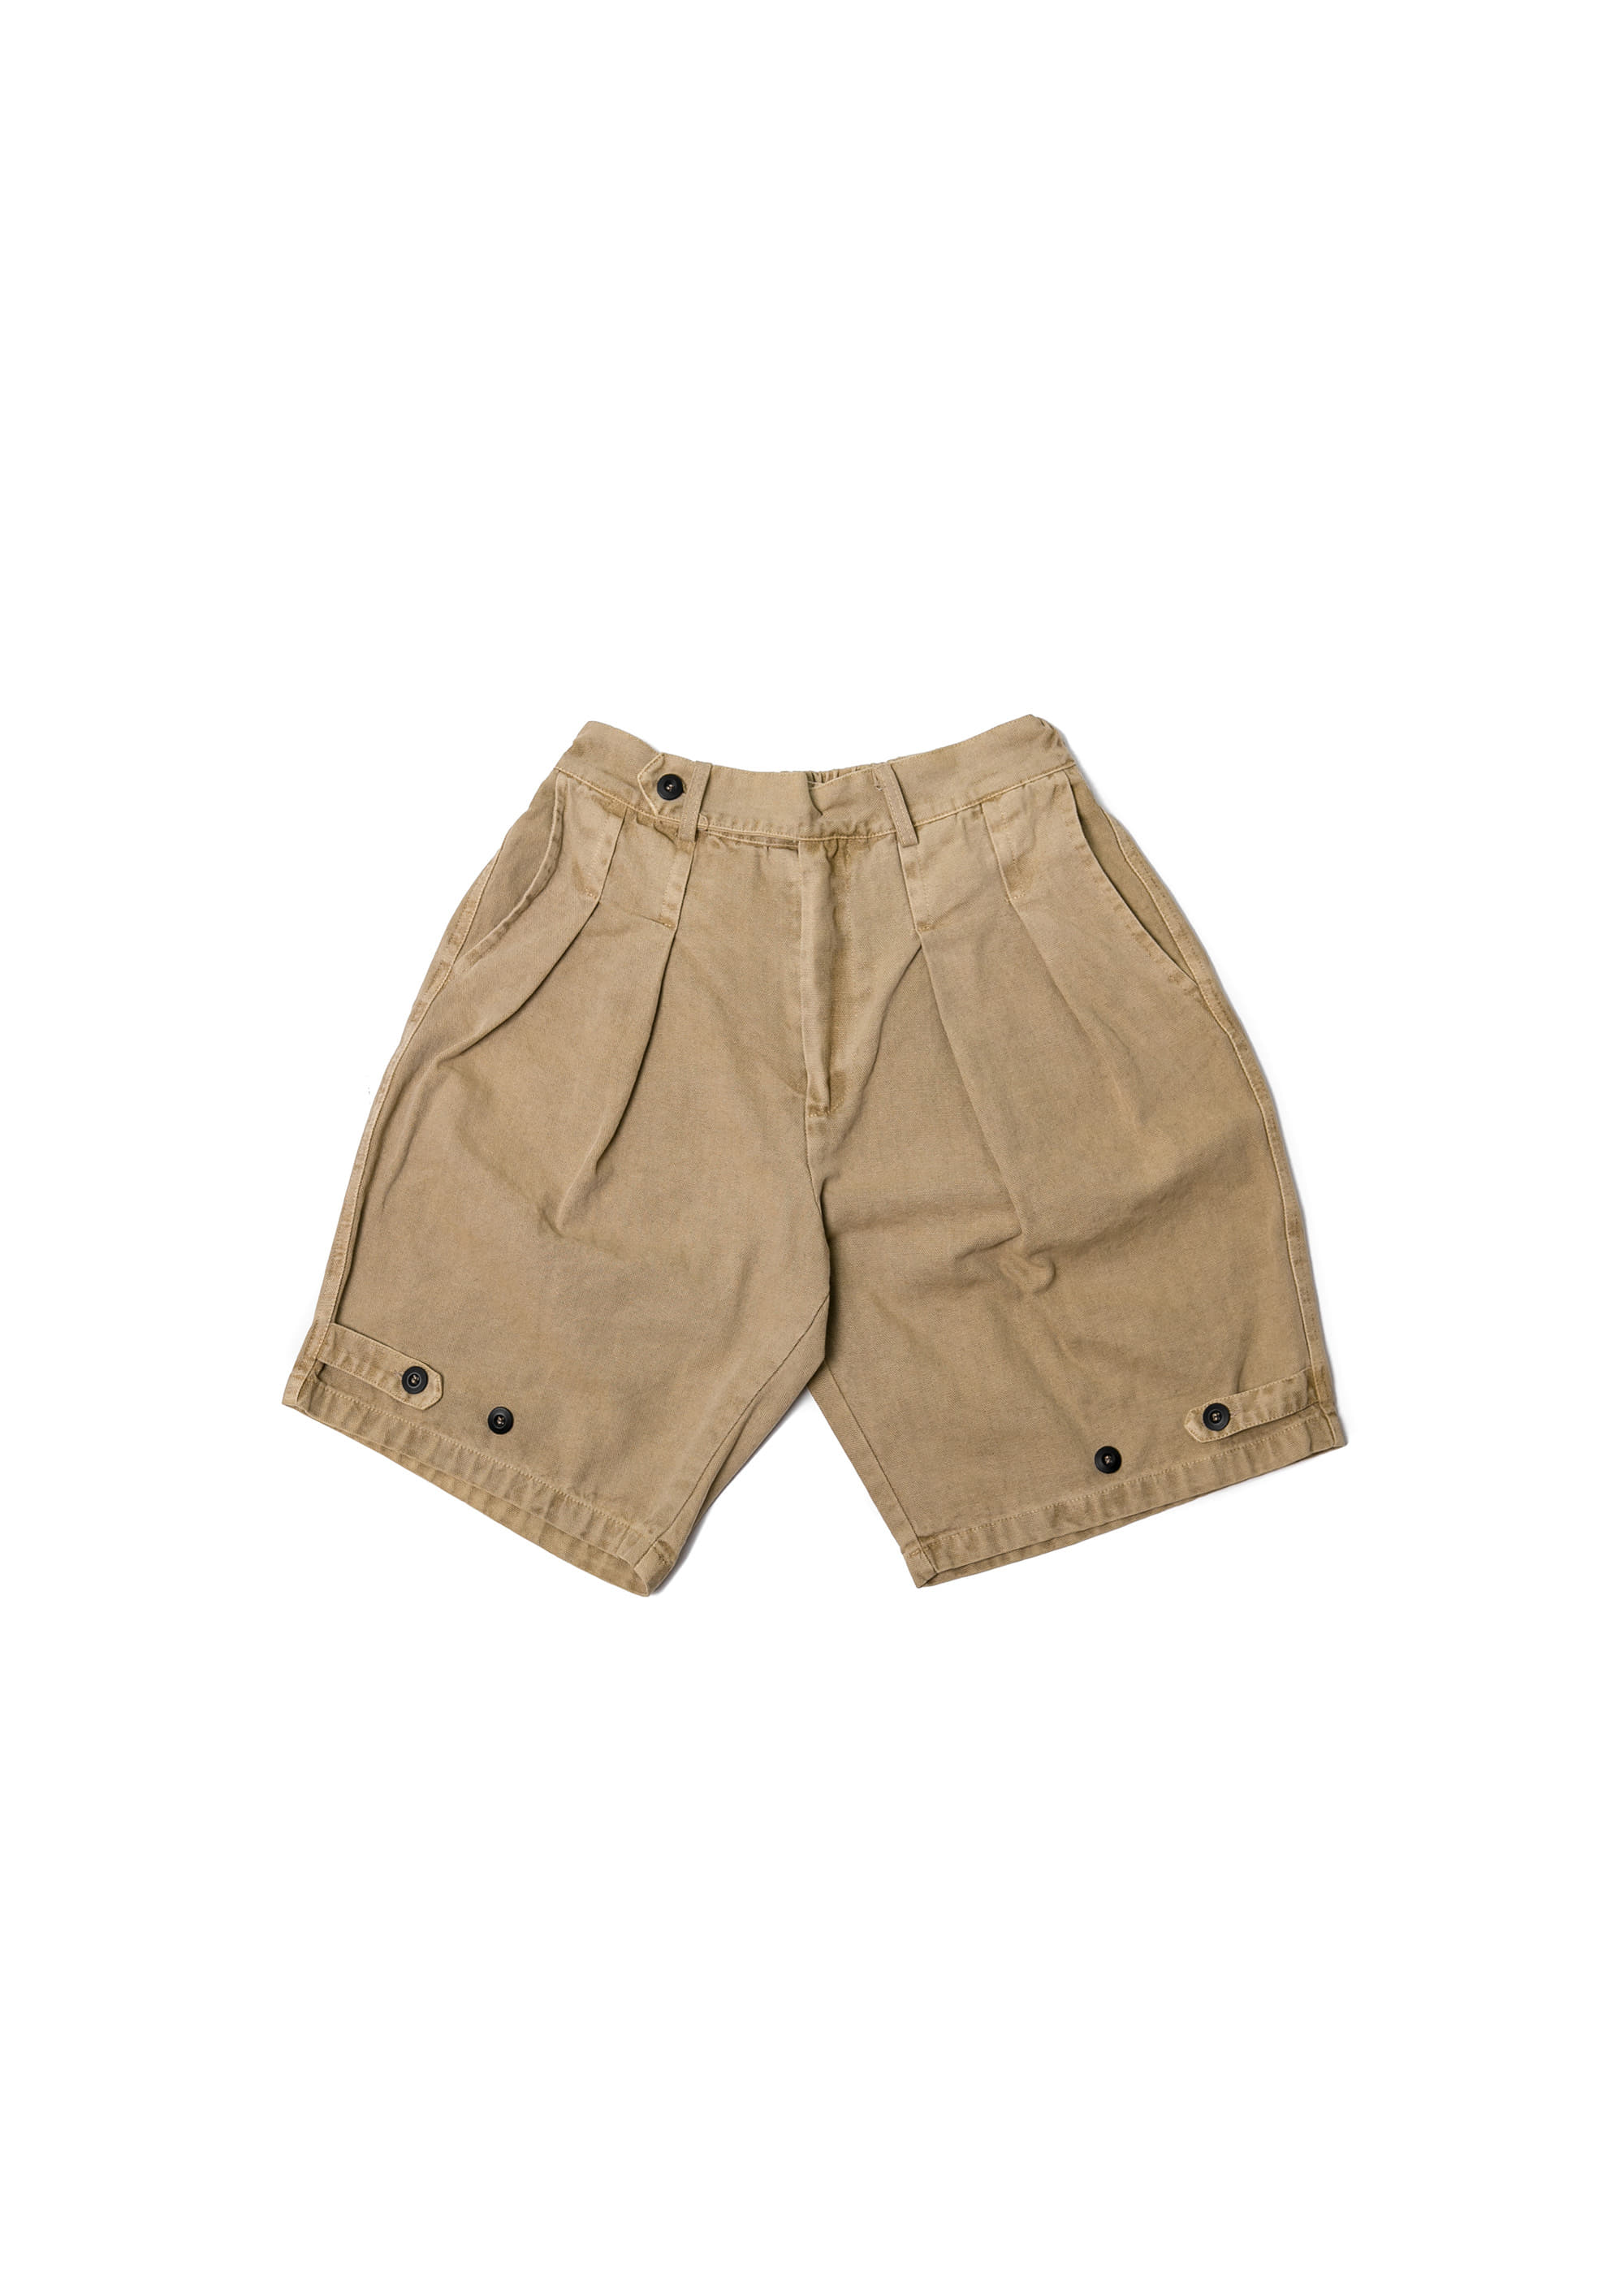 Adjust Button Banding Bermuda Pants - Beige